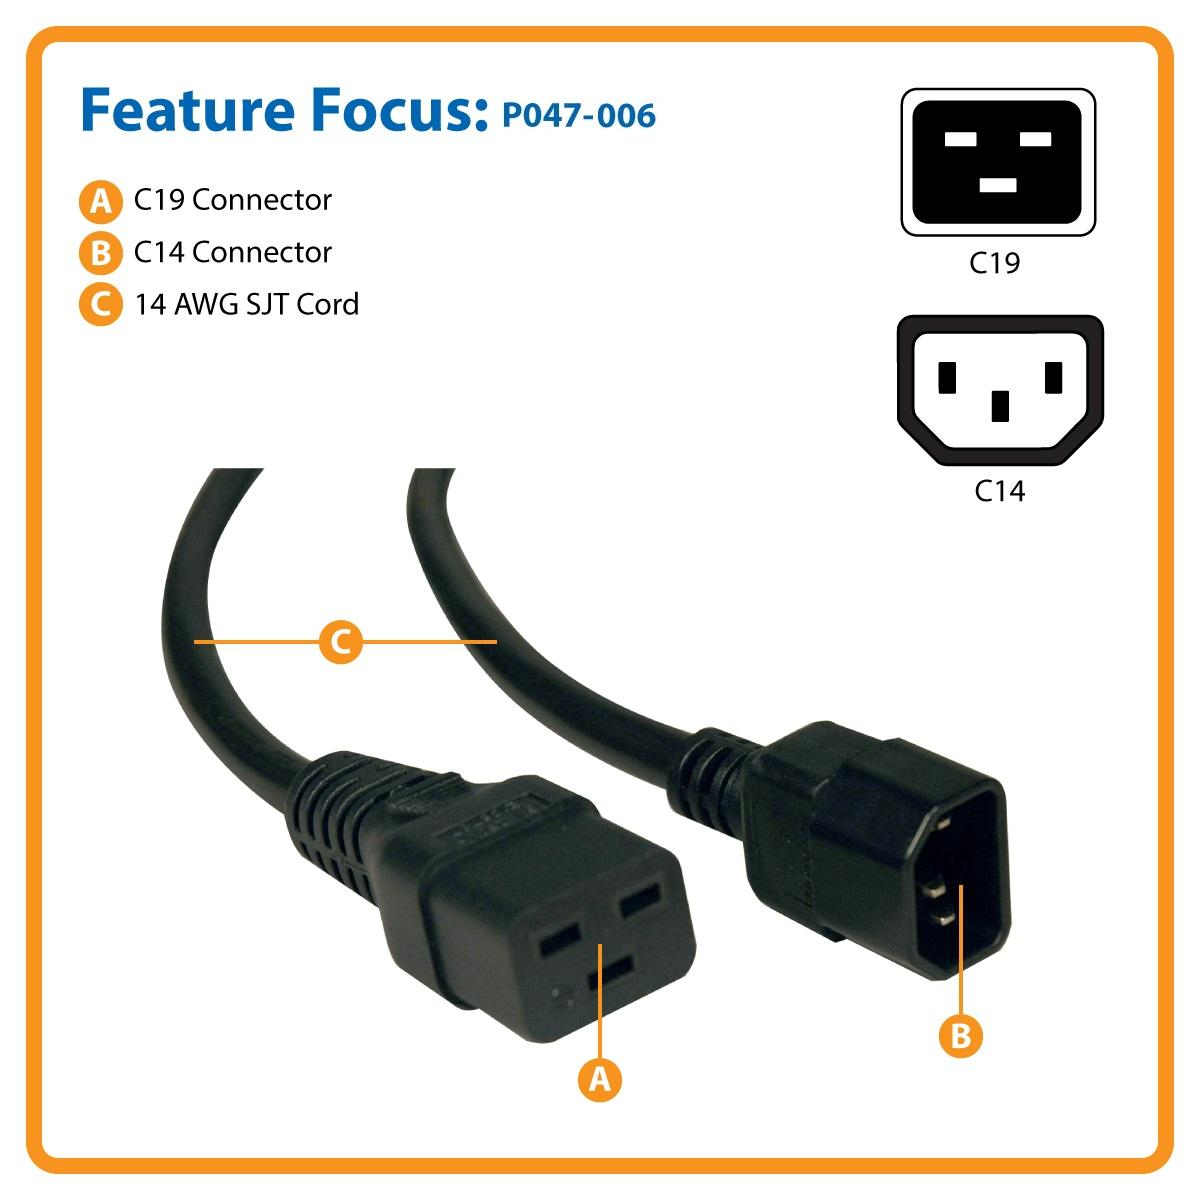 Tripp Lite Heavy Duty Power Extension Cord 14awg 15a C19 To C14 6 Virus 16 Awg Speaker For Network Hardware